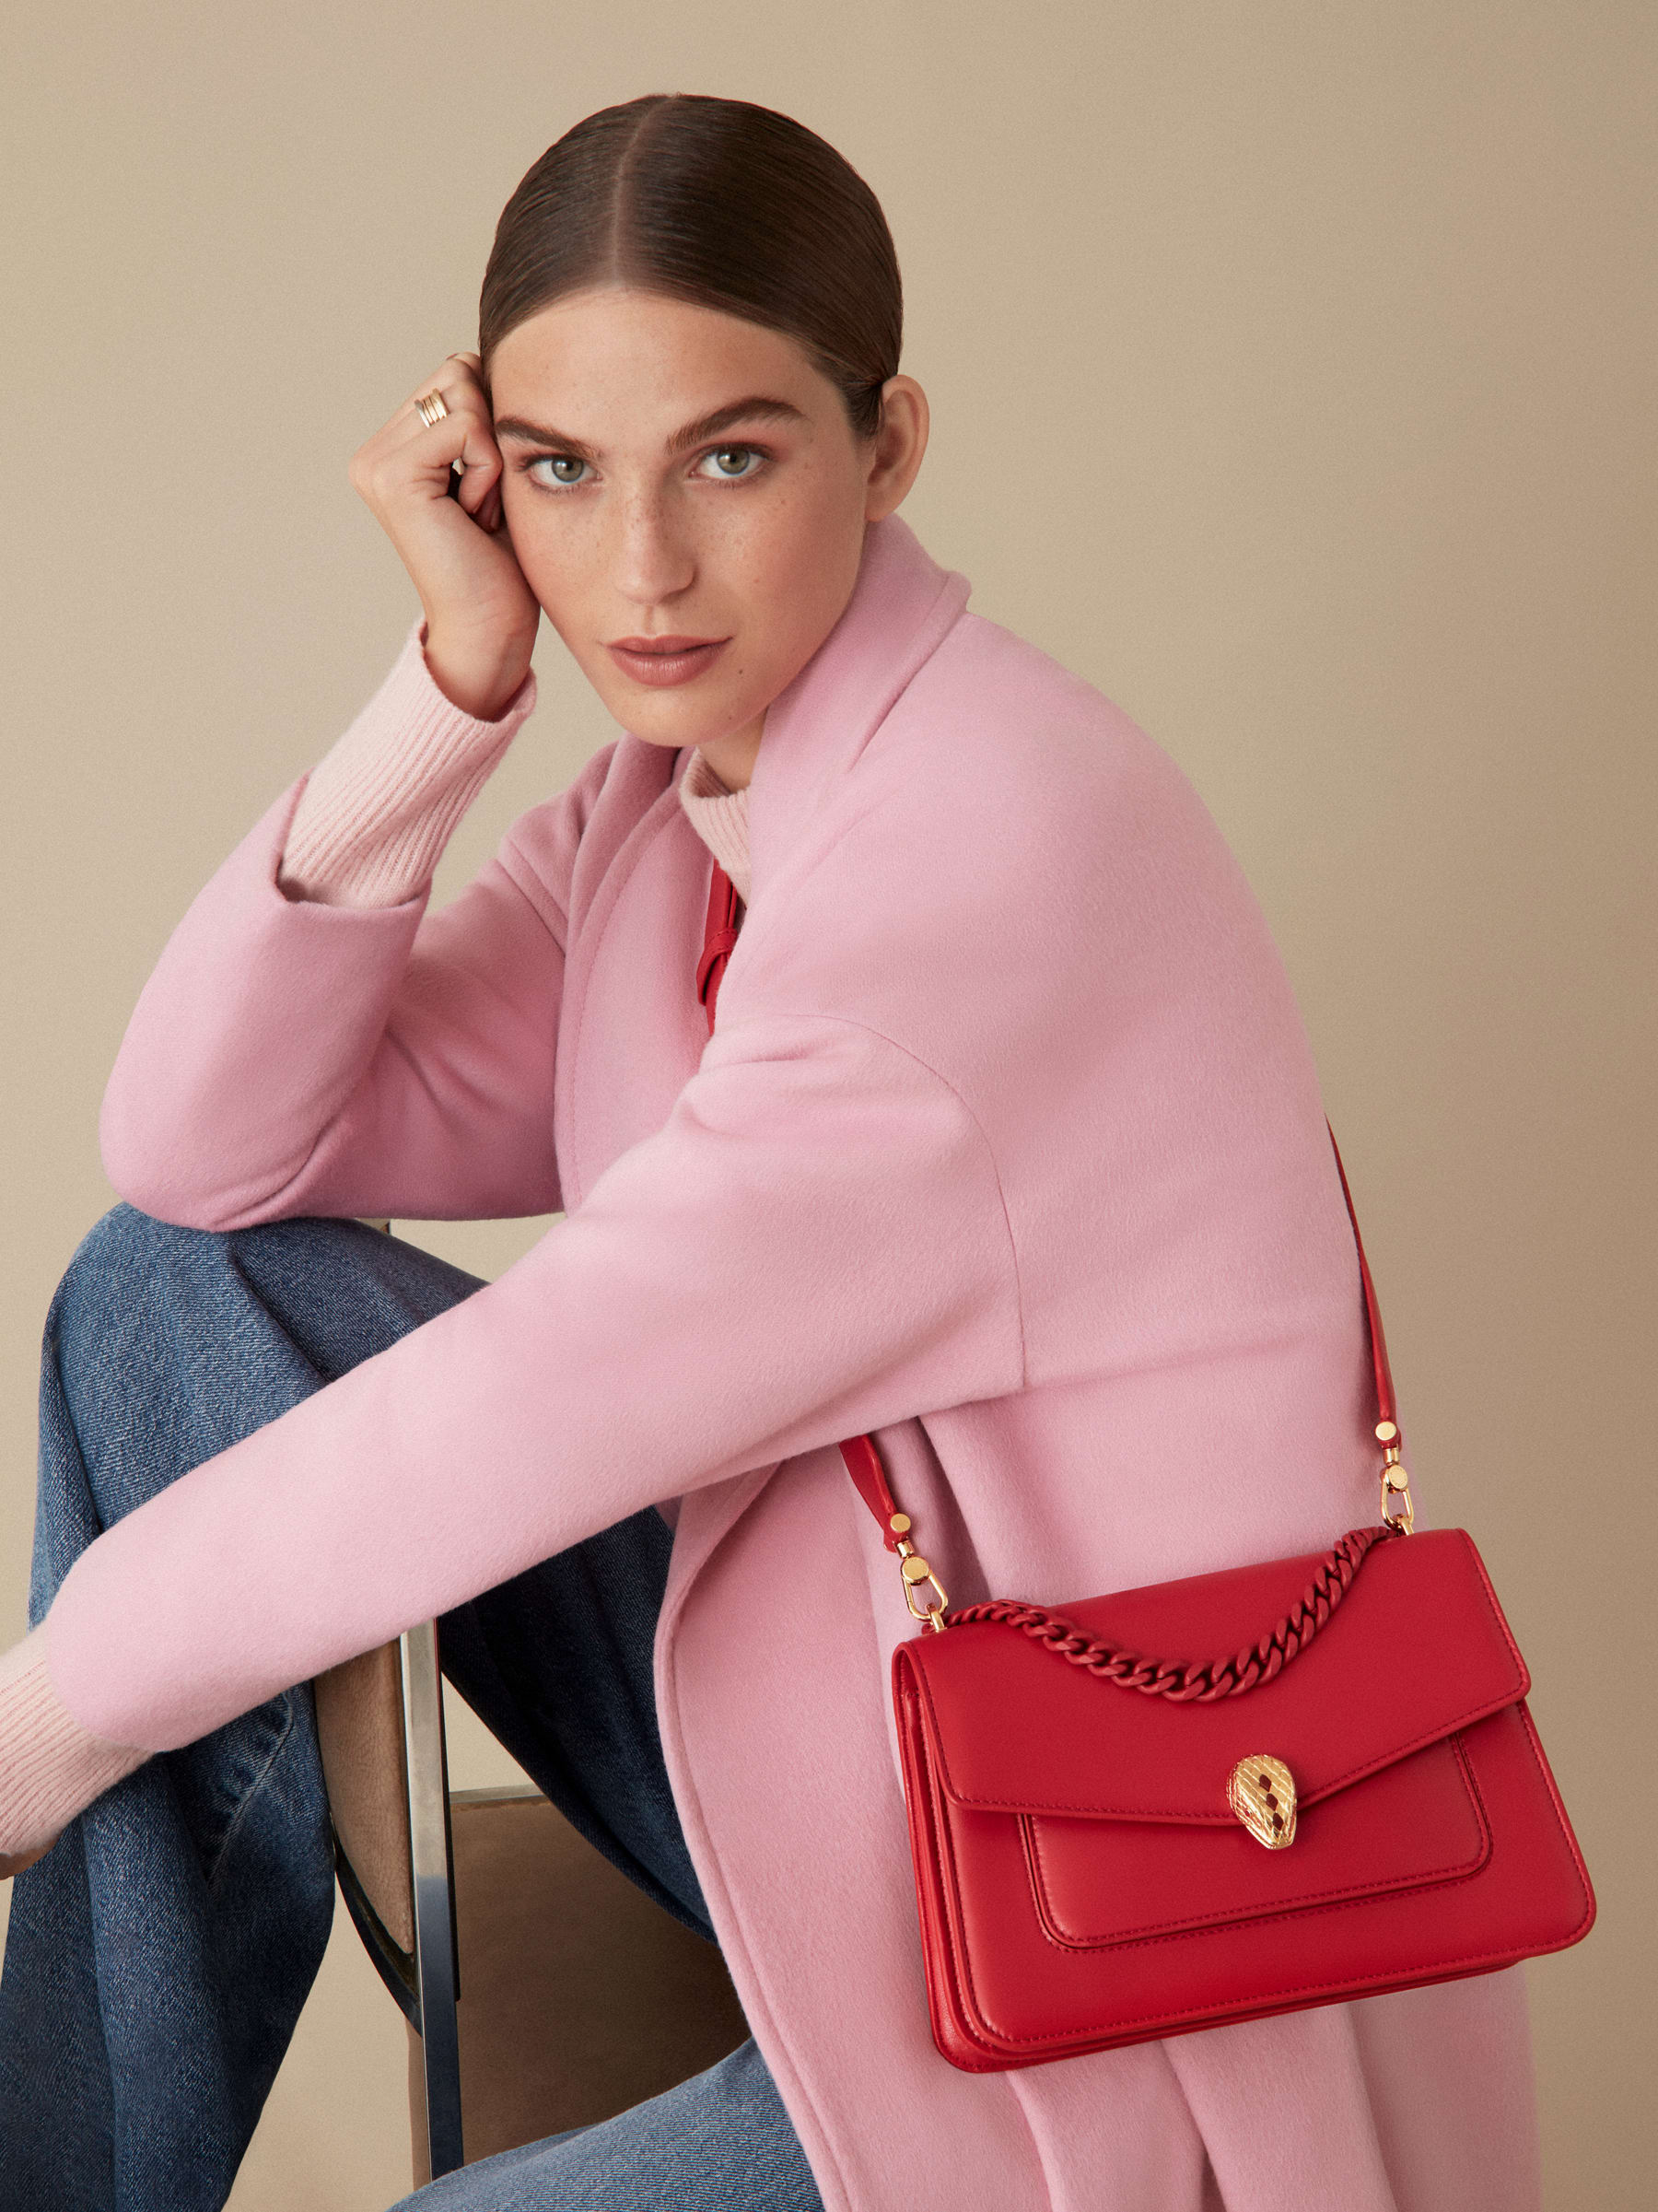 """Serpenti Forever"" maxi chain crossbody bag in Amaranth Garnet red nappa leather, with Pink Spinel fuchsia nappa leather inner lining. New Serpenti head closure in gold-plated brass, finished with small red carnelian scales in the middle and red enamel eyes. 1138-MCN image 7"